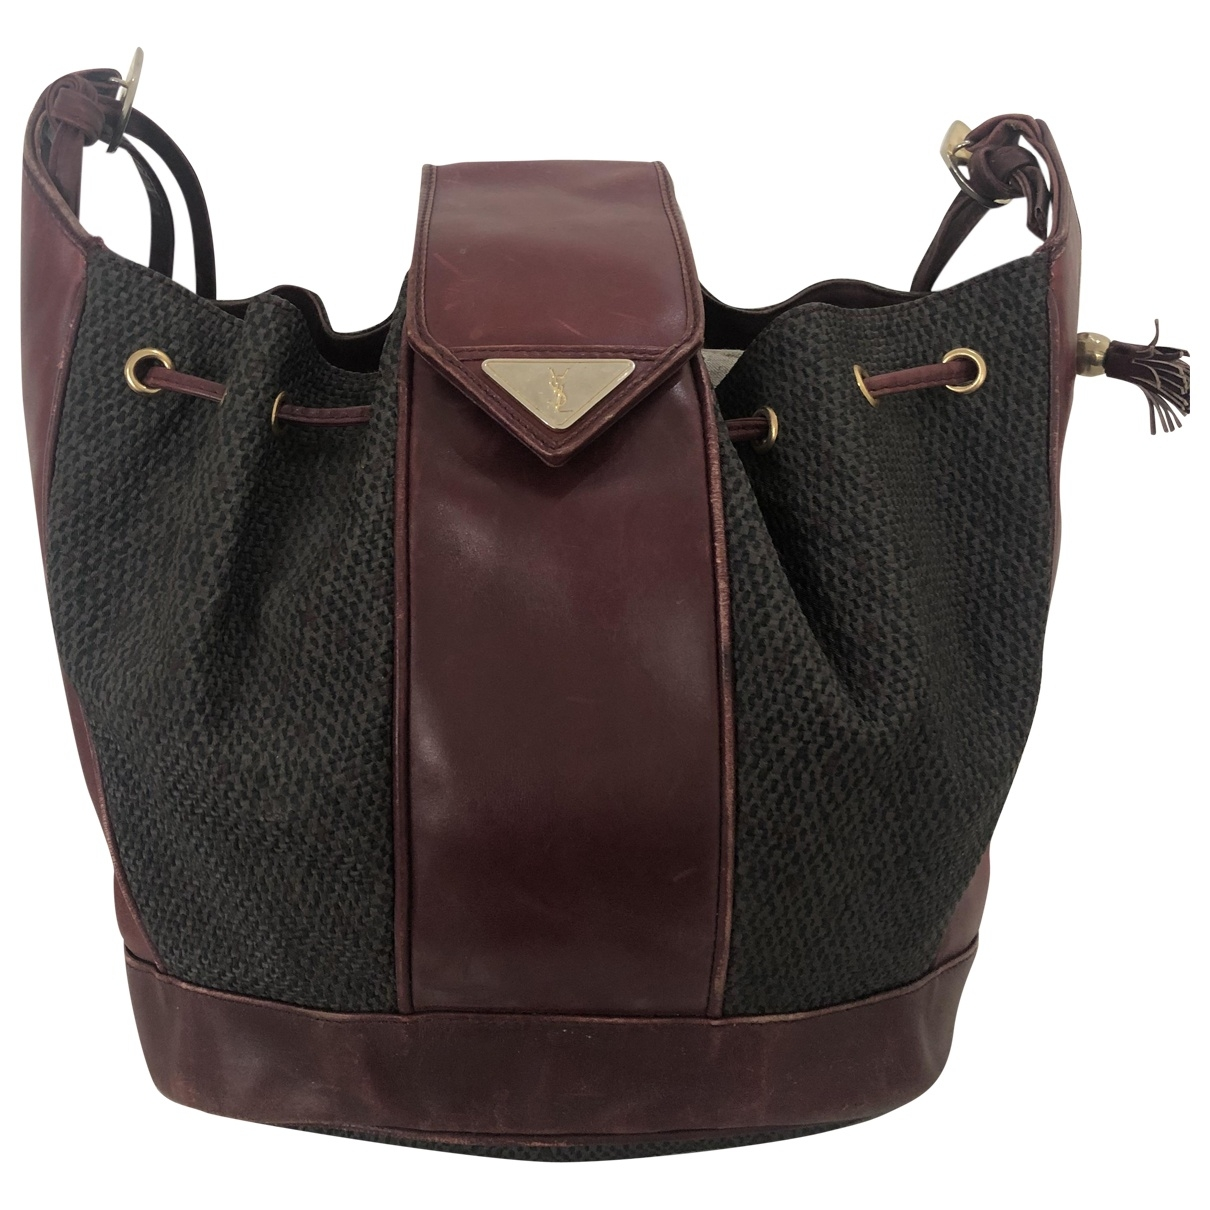 Yves Saint Laurent \N Burgundy Cloth handbag for Women \N